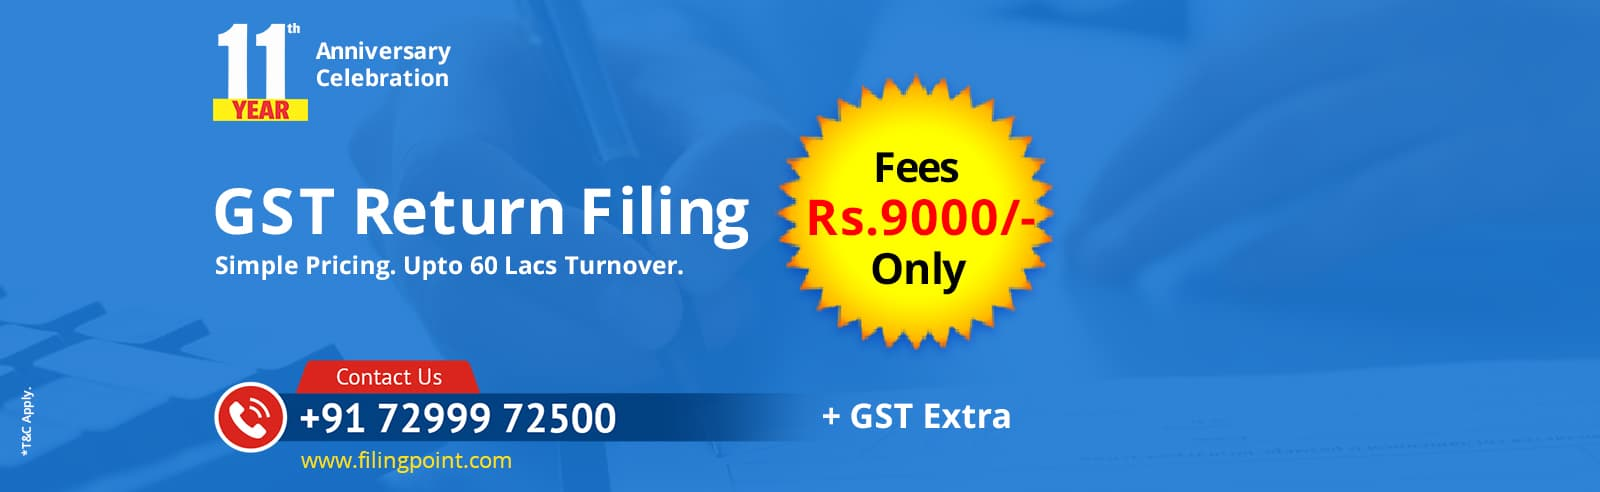 GST Filing Services Near Me Chennai 4th Cross Street Adyar Indira Nagar